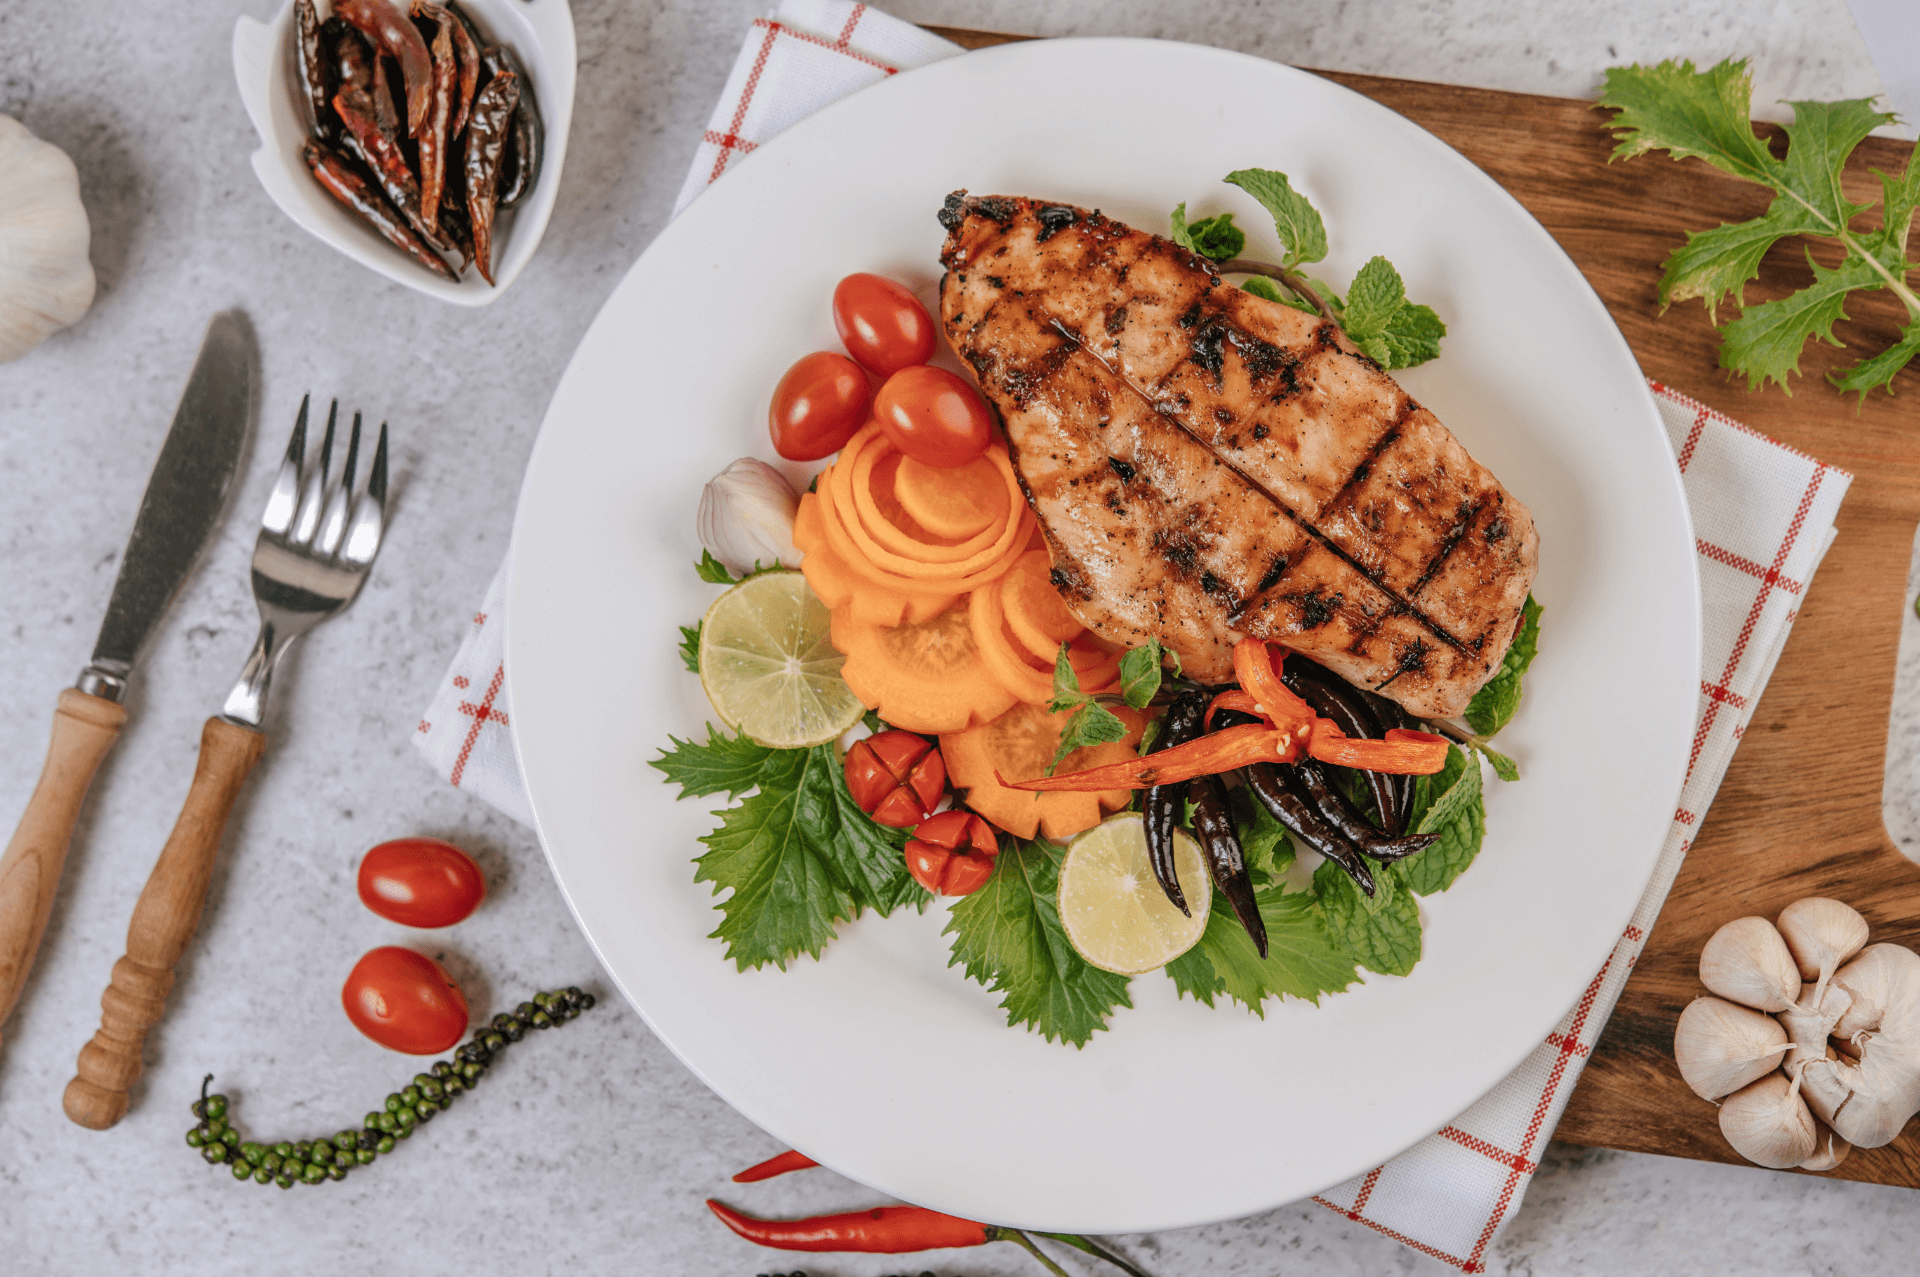 Healthy Chicken Dinner recommended by solterra dentistry in phoenix az